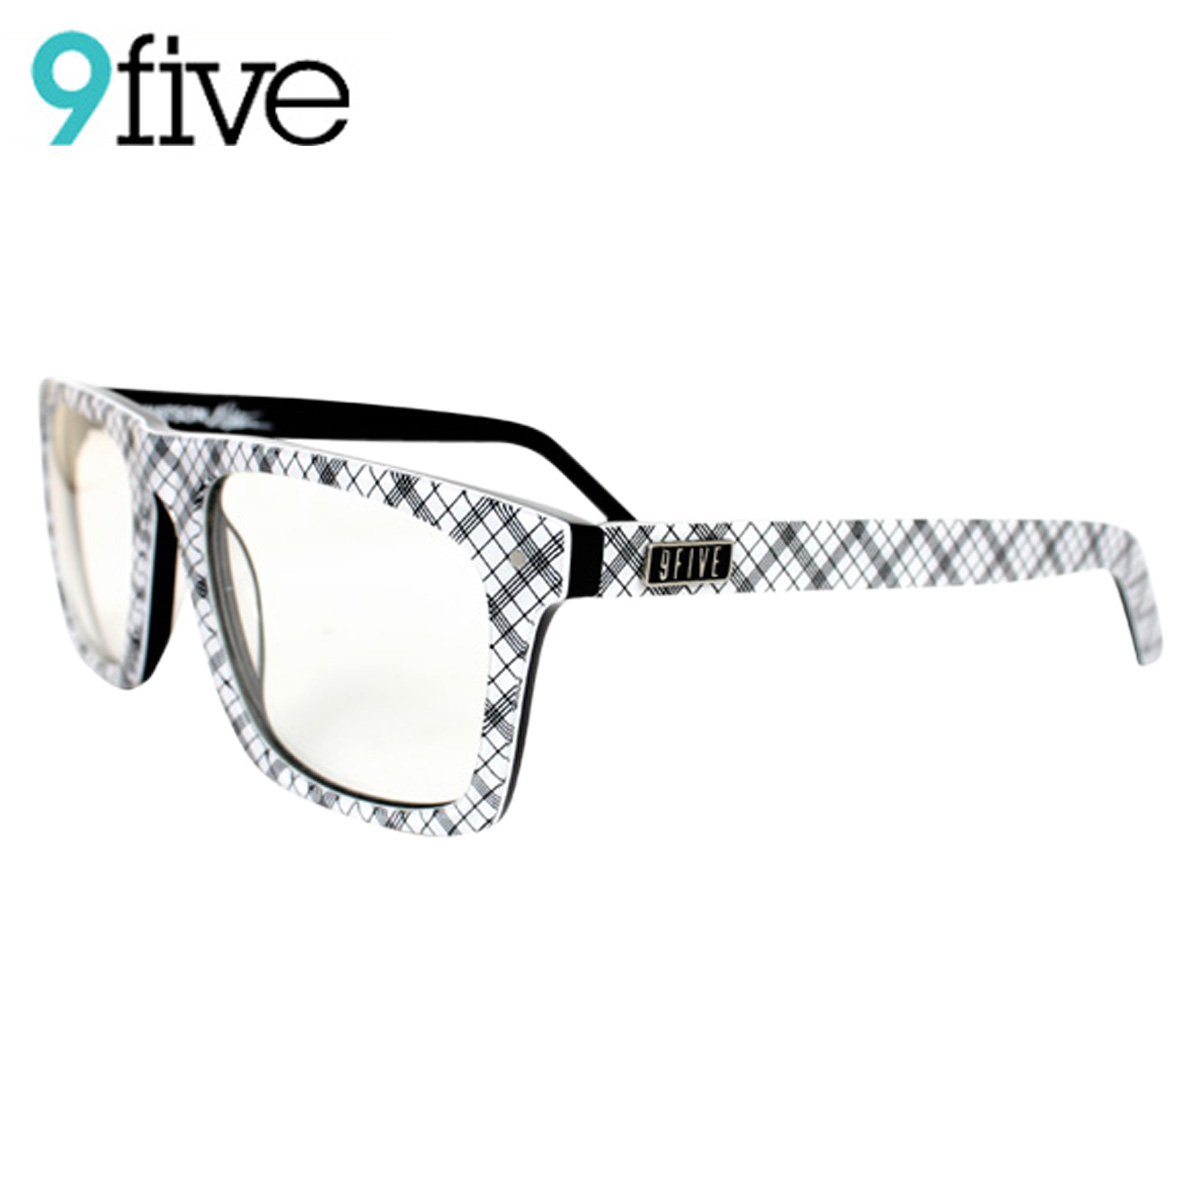 0005433fb2a SneaK Online Shop  Nine five 9FIVE sunglasses black white men gap ...